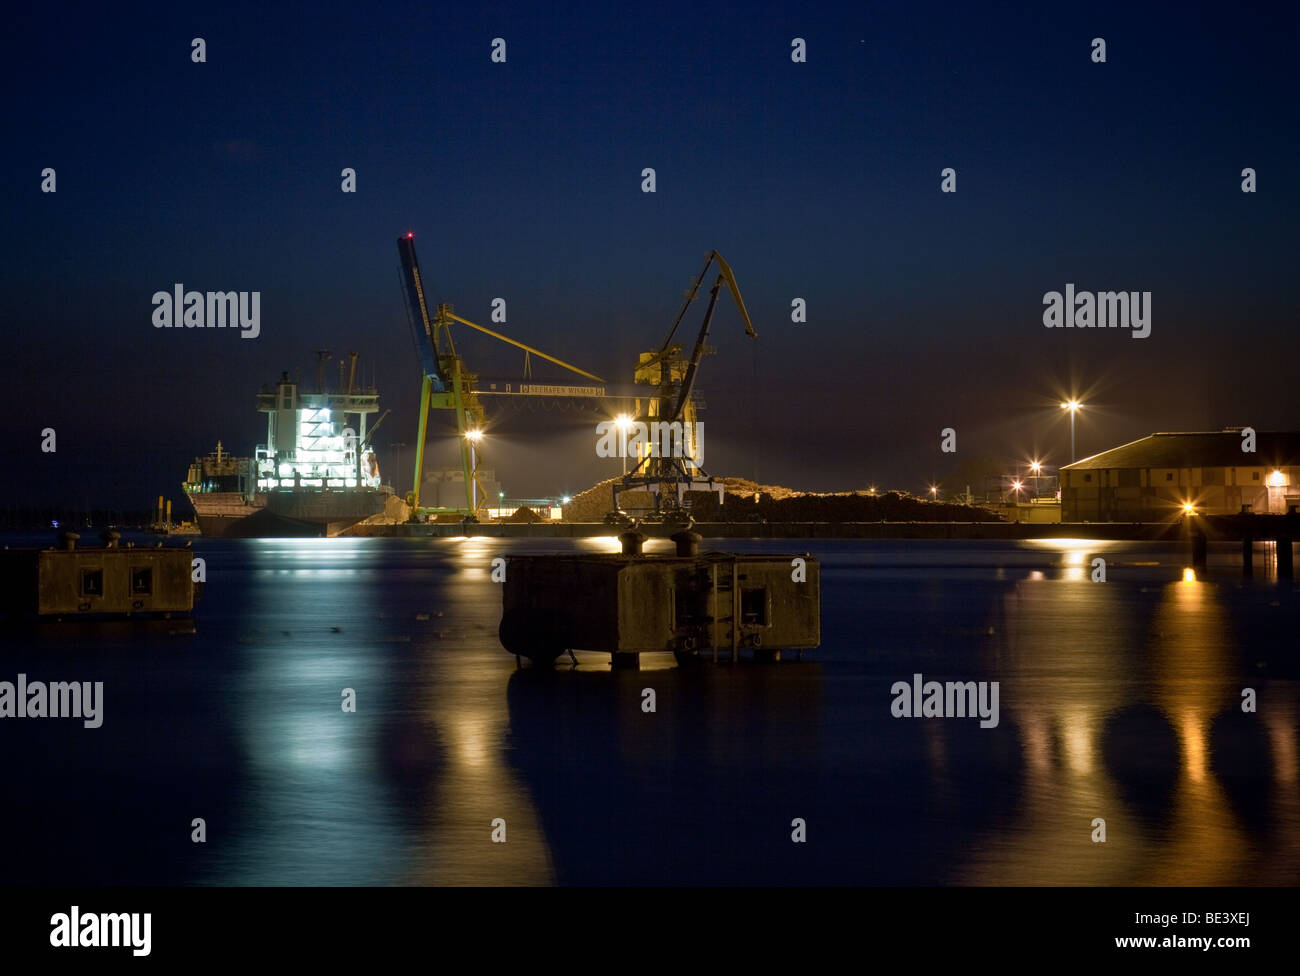 Harbor of Wismar, Germany, with ship and cranes by night - Stock Image